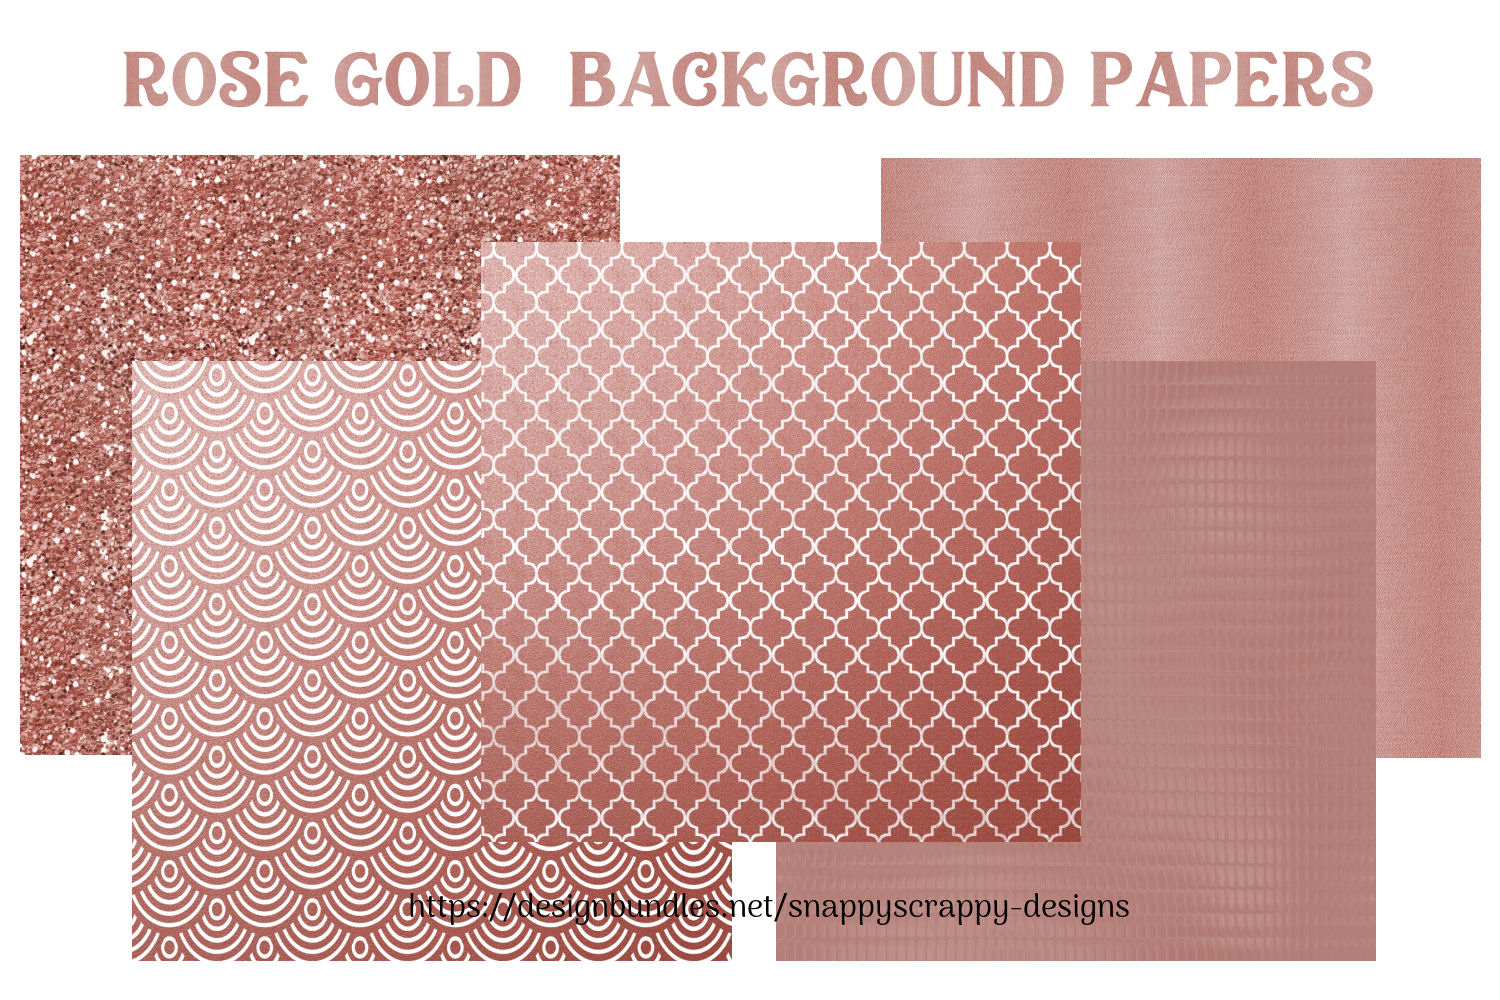 Rose Gold Background Papers example image 3